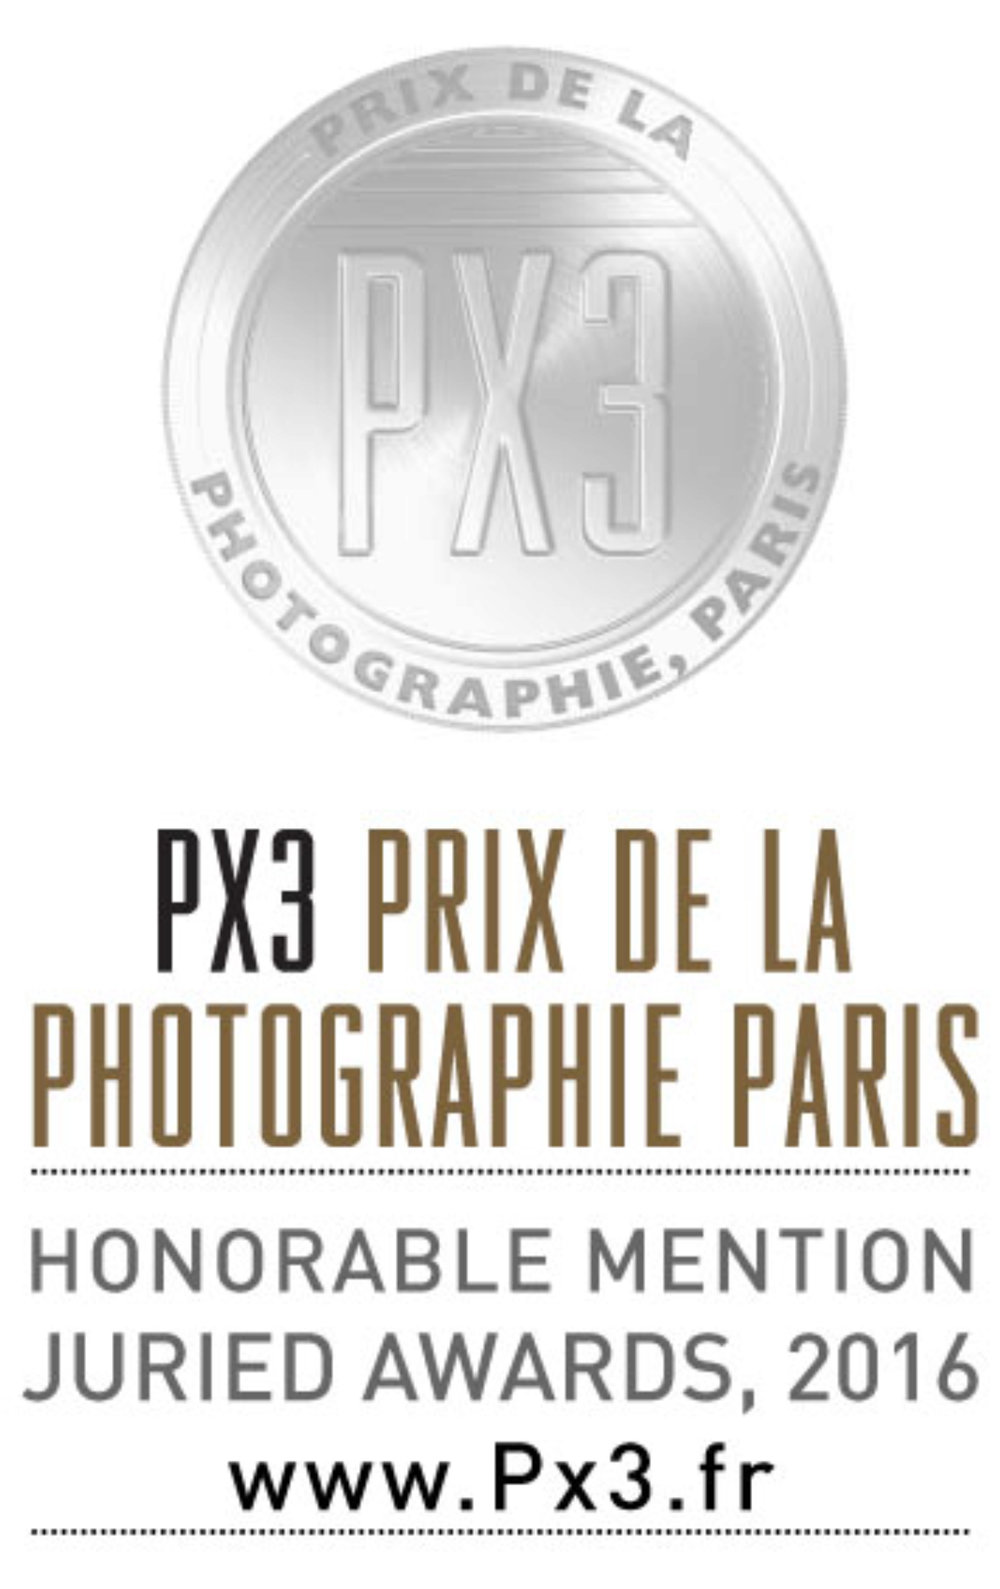 PX3 Honorable Mention Badge.jpg